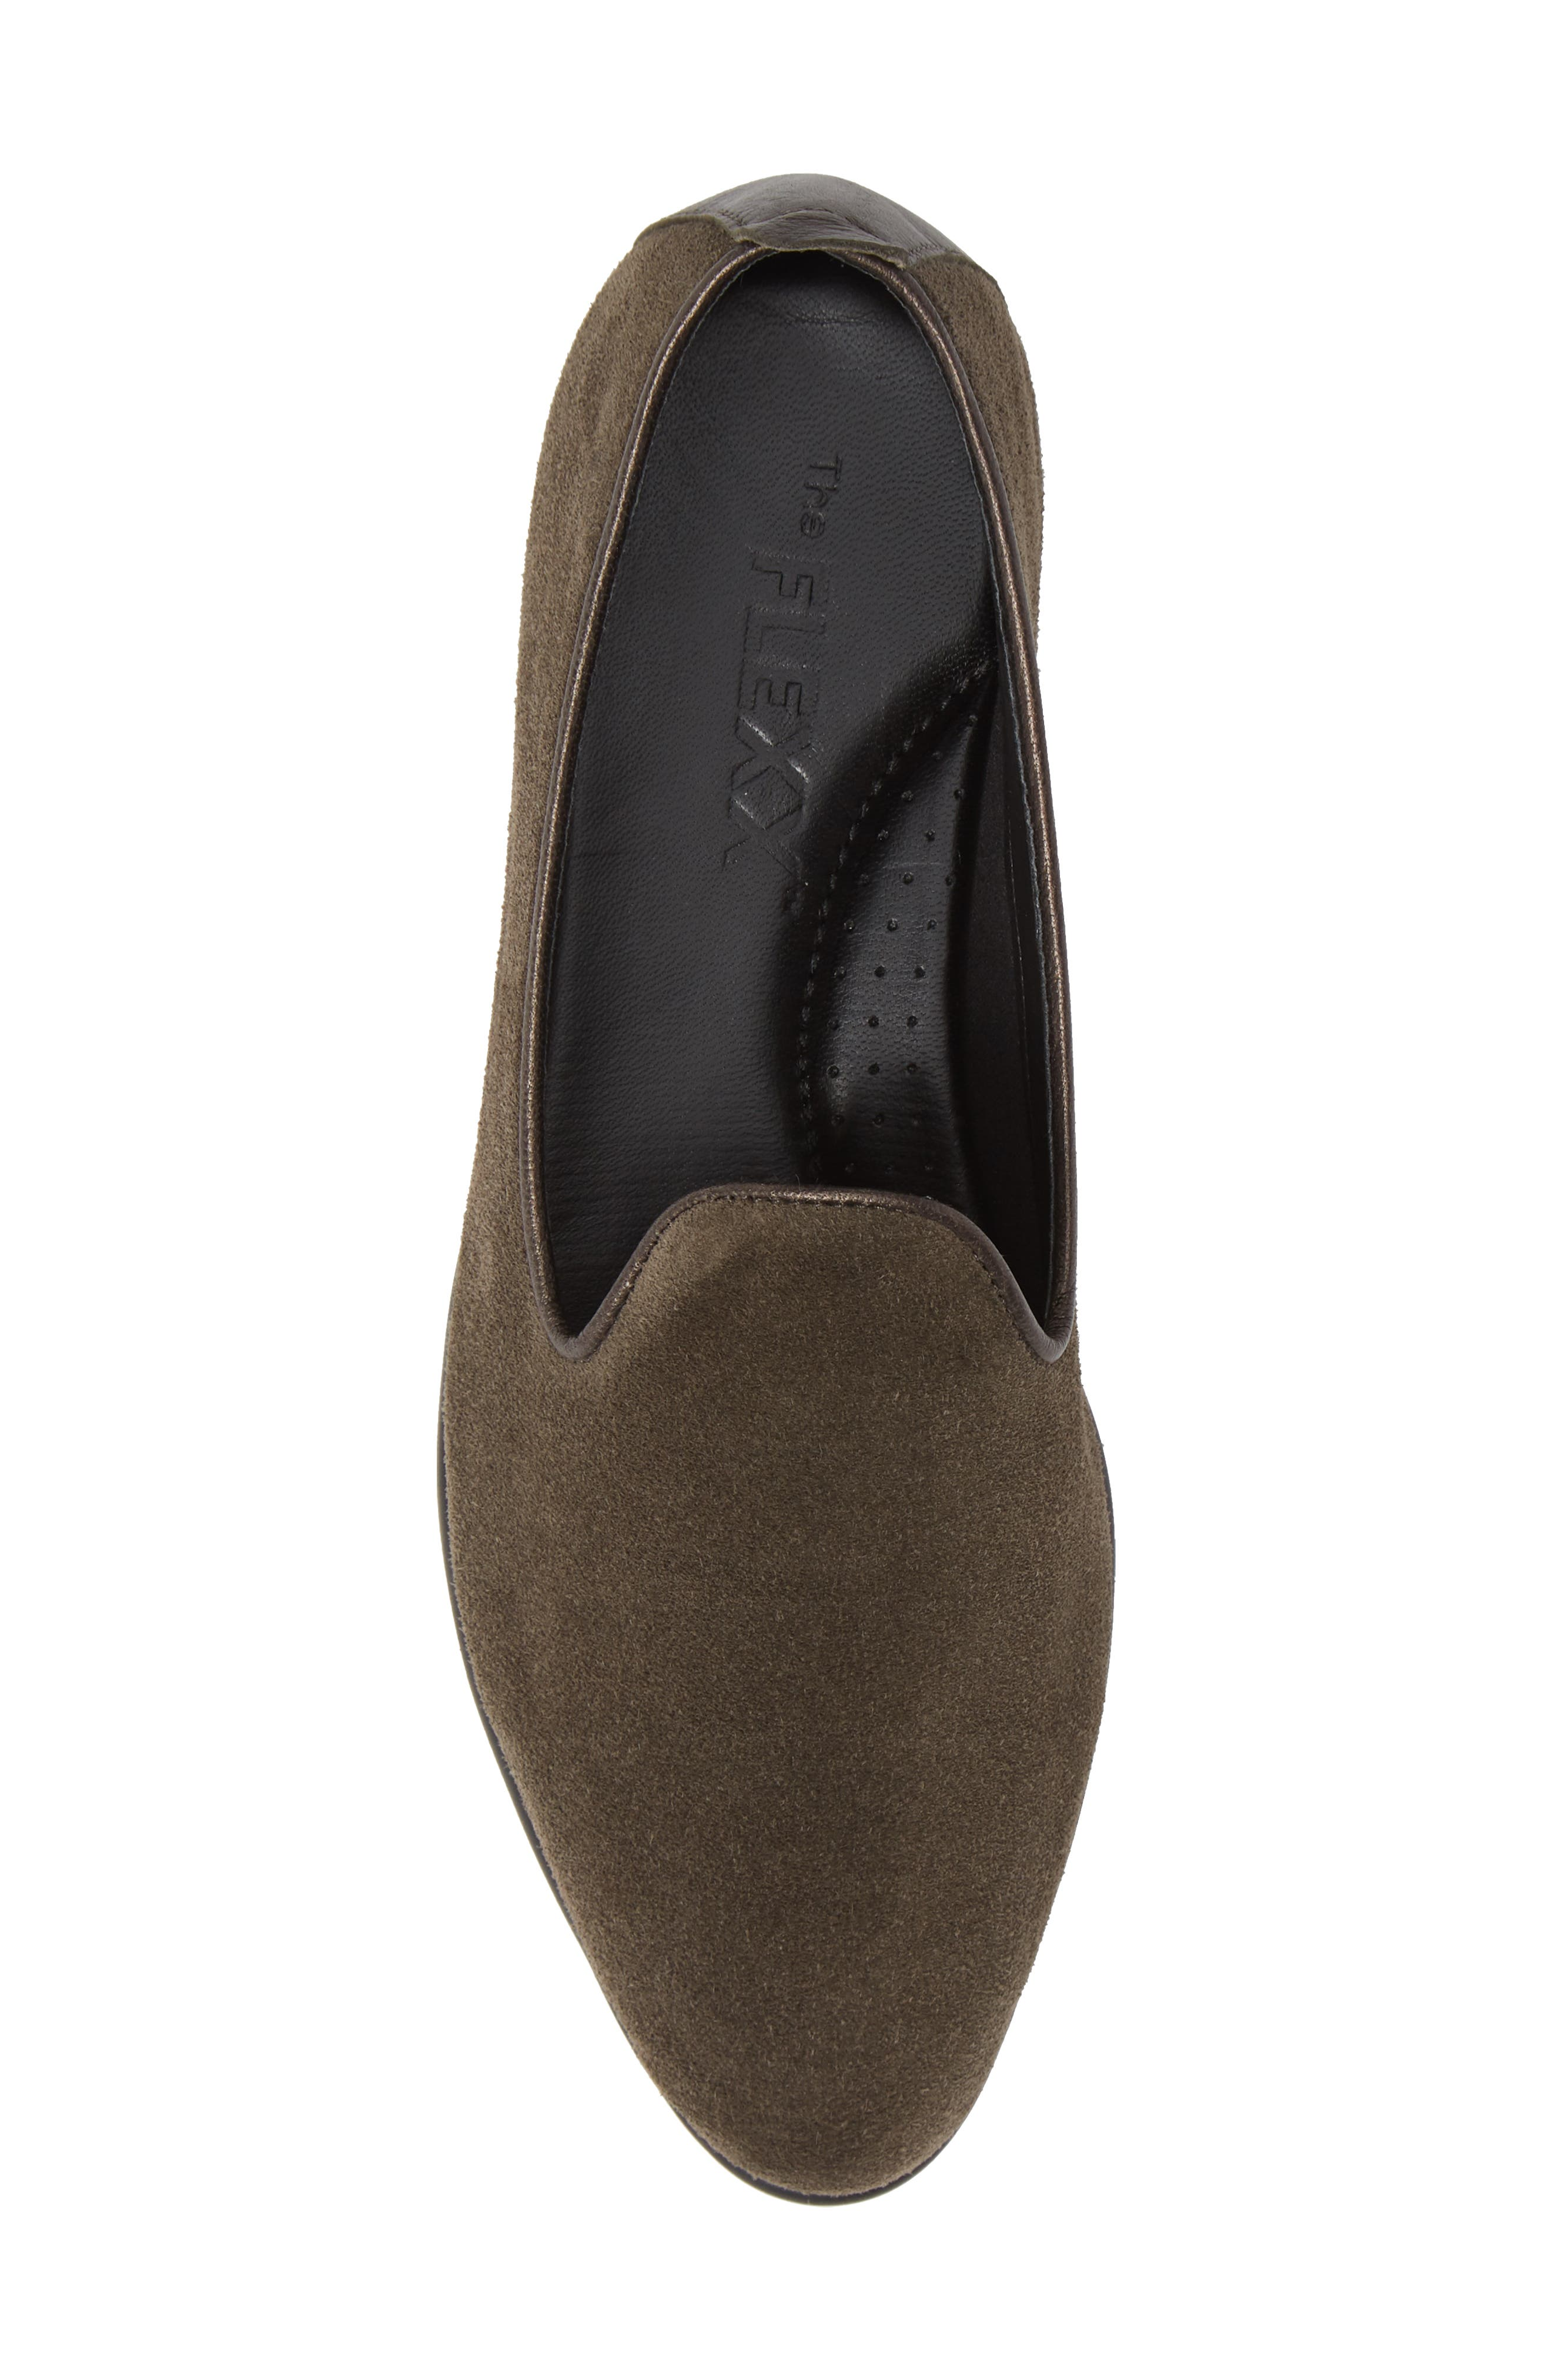 THE FLEXX, Smokin' Hot Plush Loafer, Alternate thumbnail 5, color, BROWN SUEDE